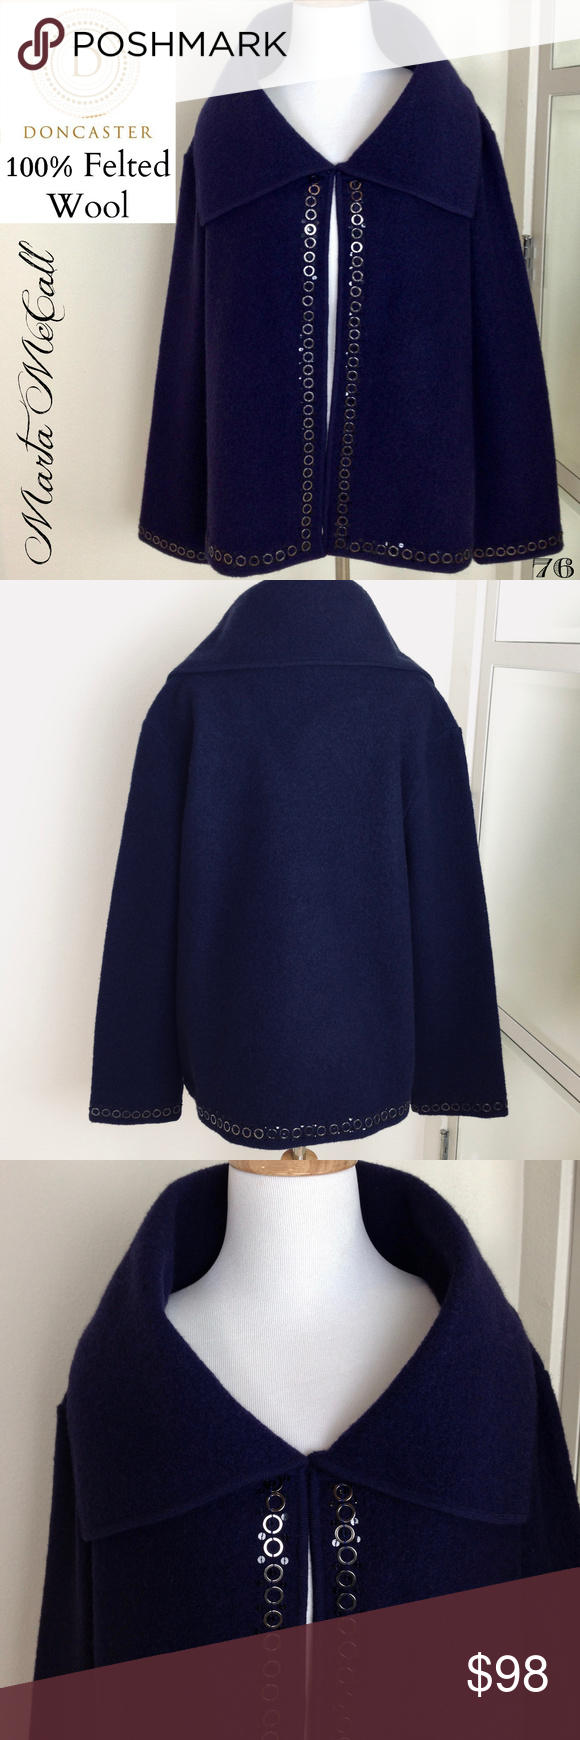 DONCASTER L Boiled Felted 100 Wool Open Jacket Clothes